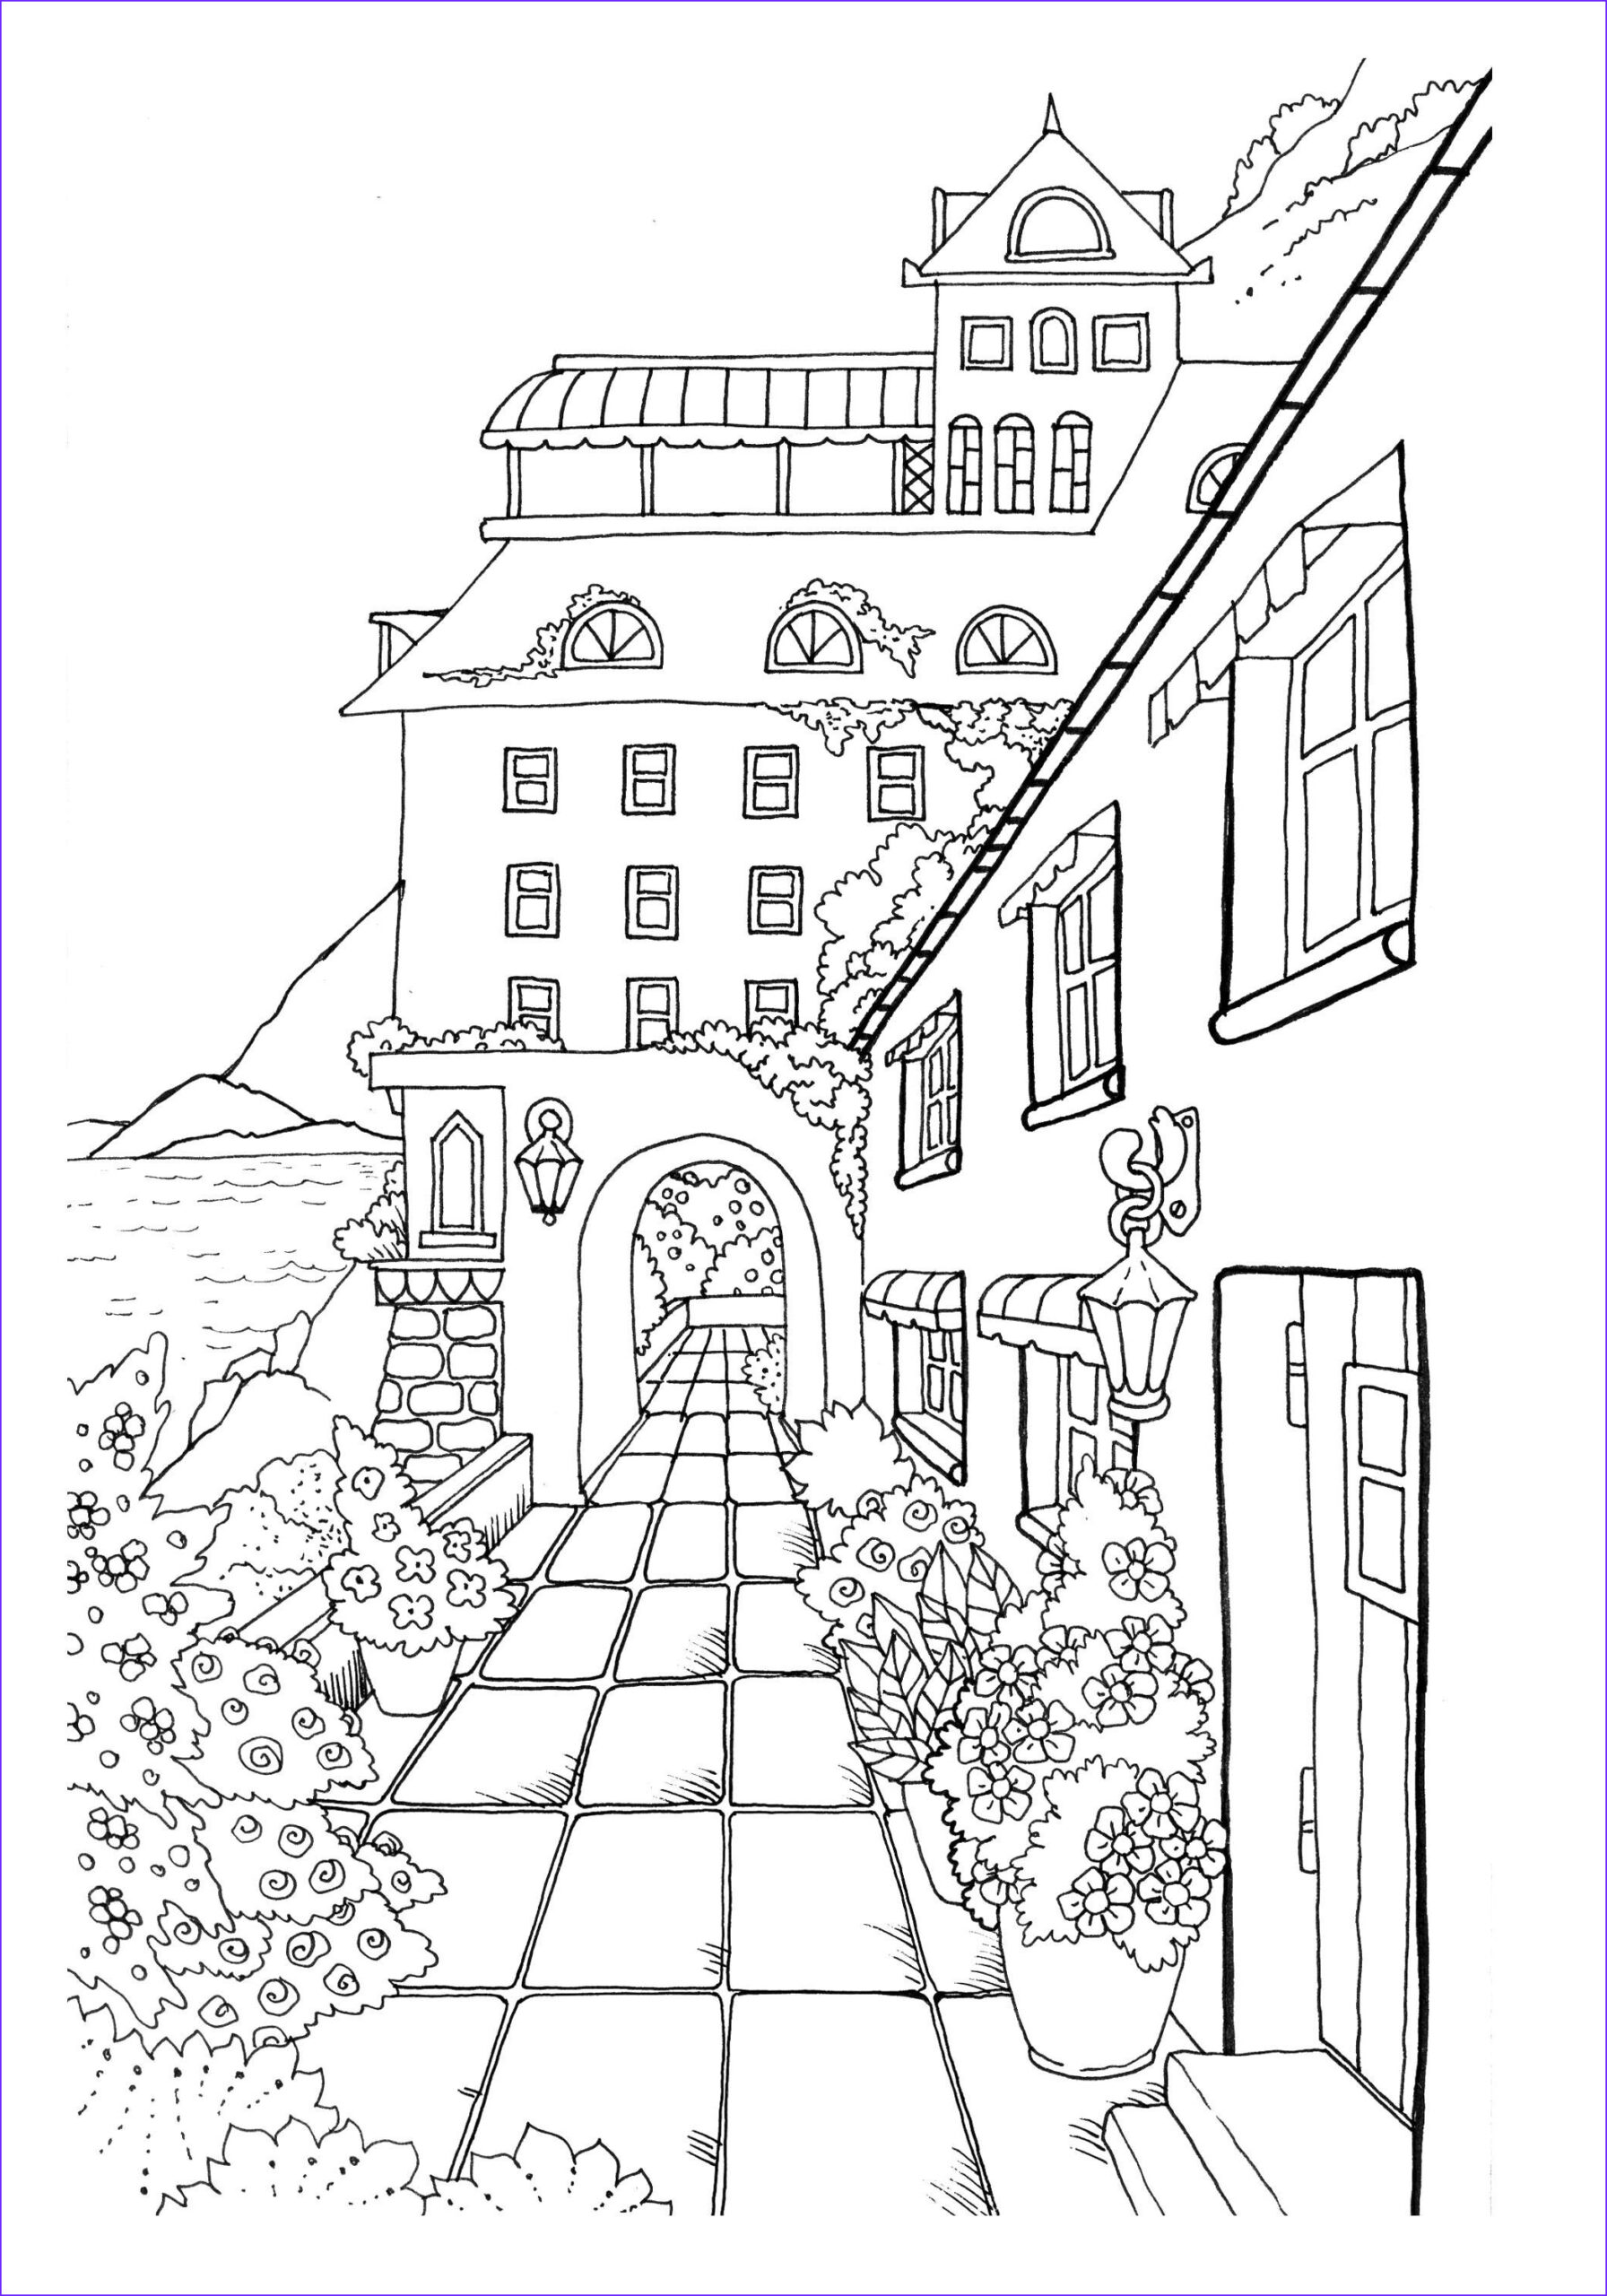 Small Adult Coloring Books Awesome Gallery Nice Little town 2 Adult Coloring Book Digital Pages